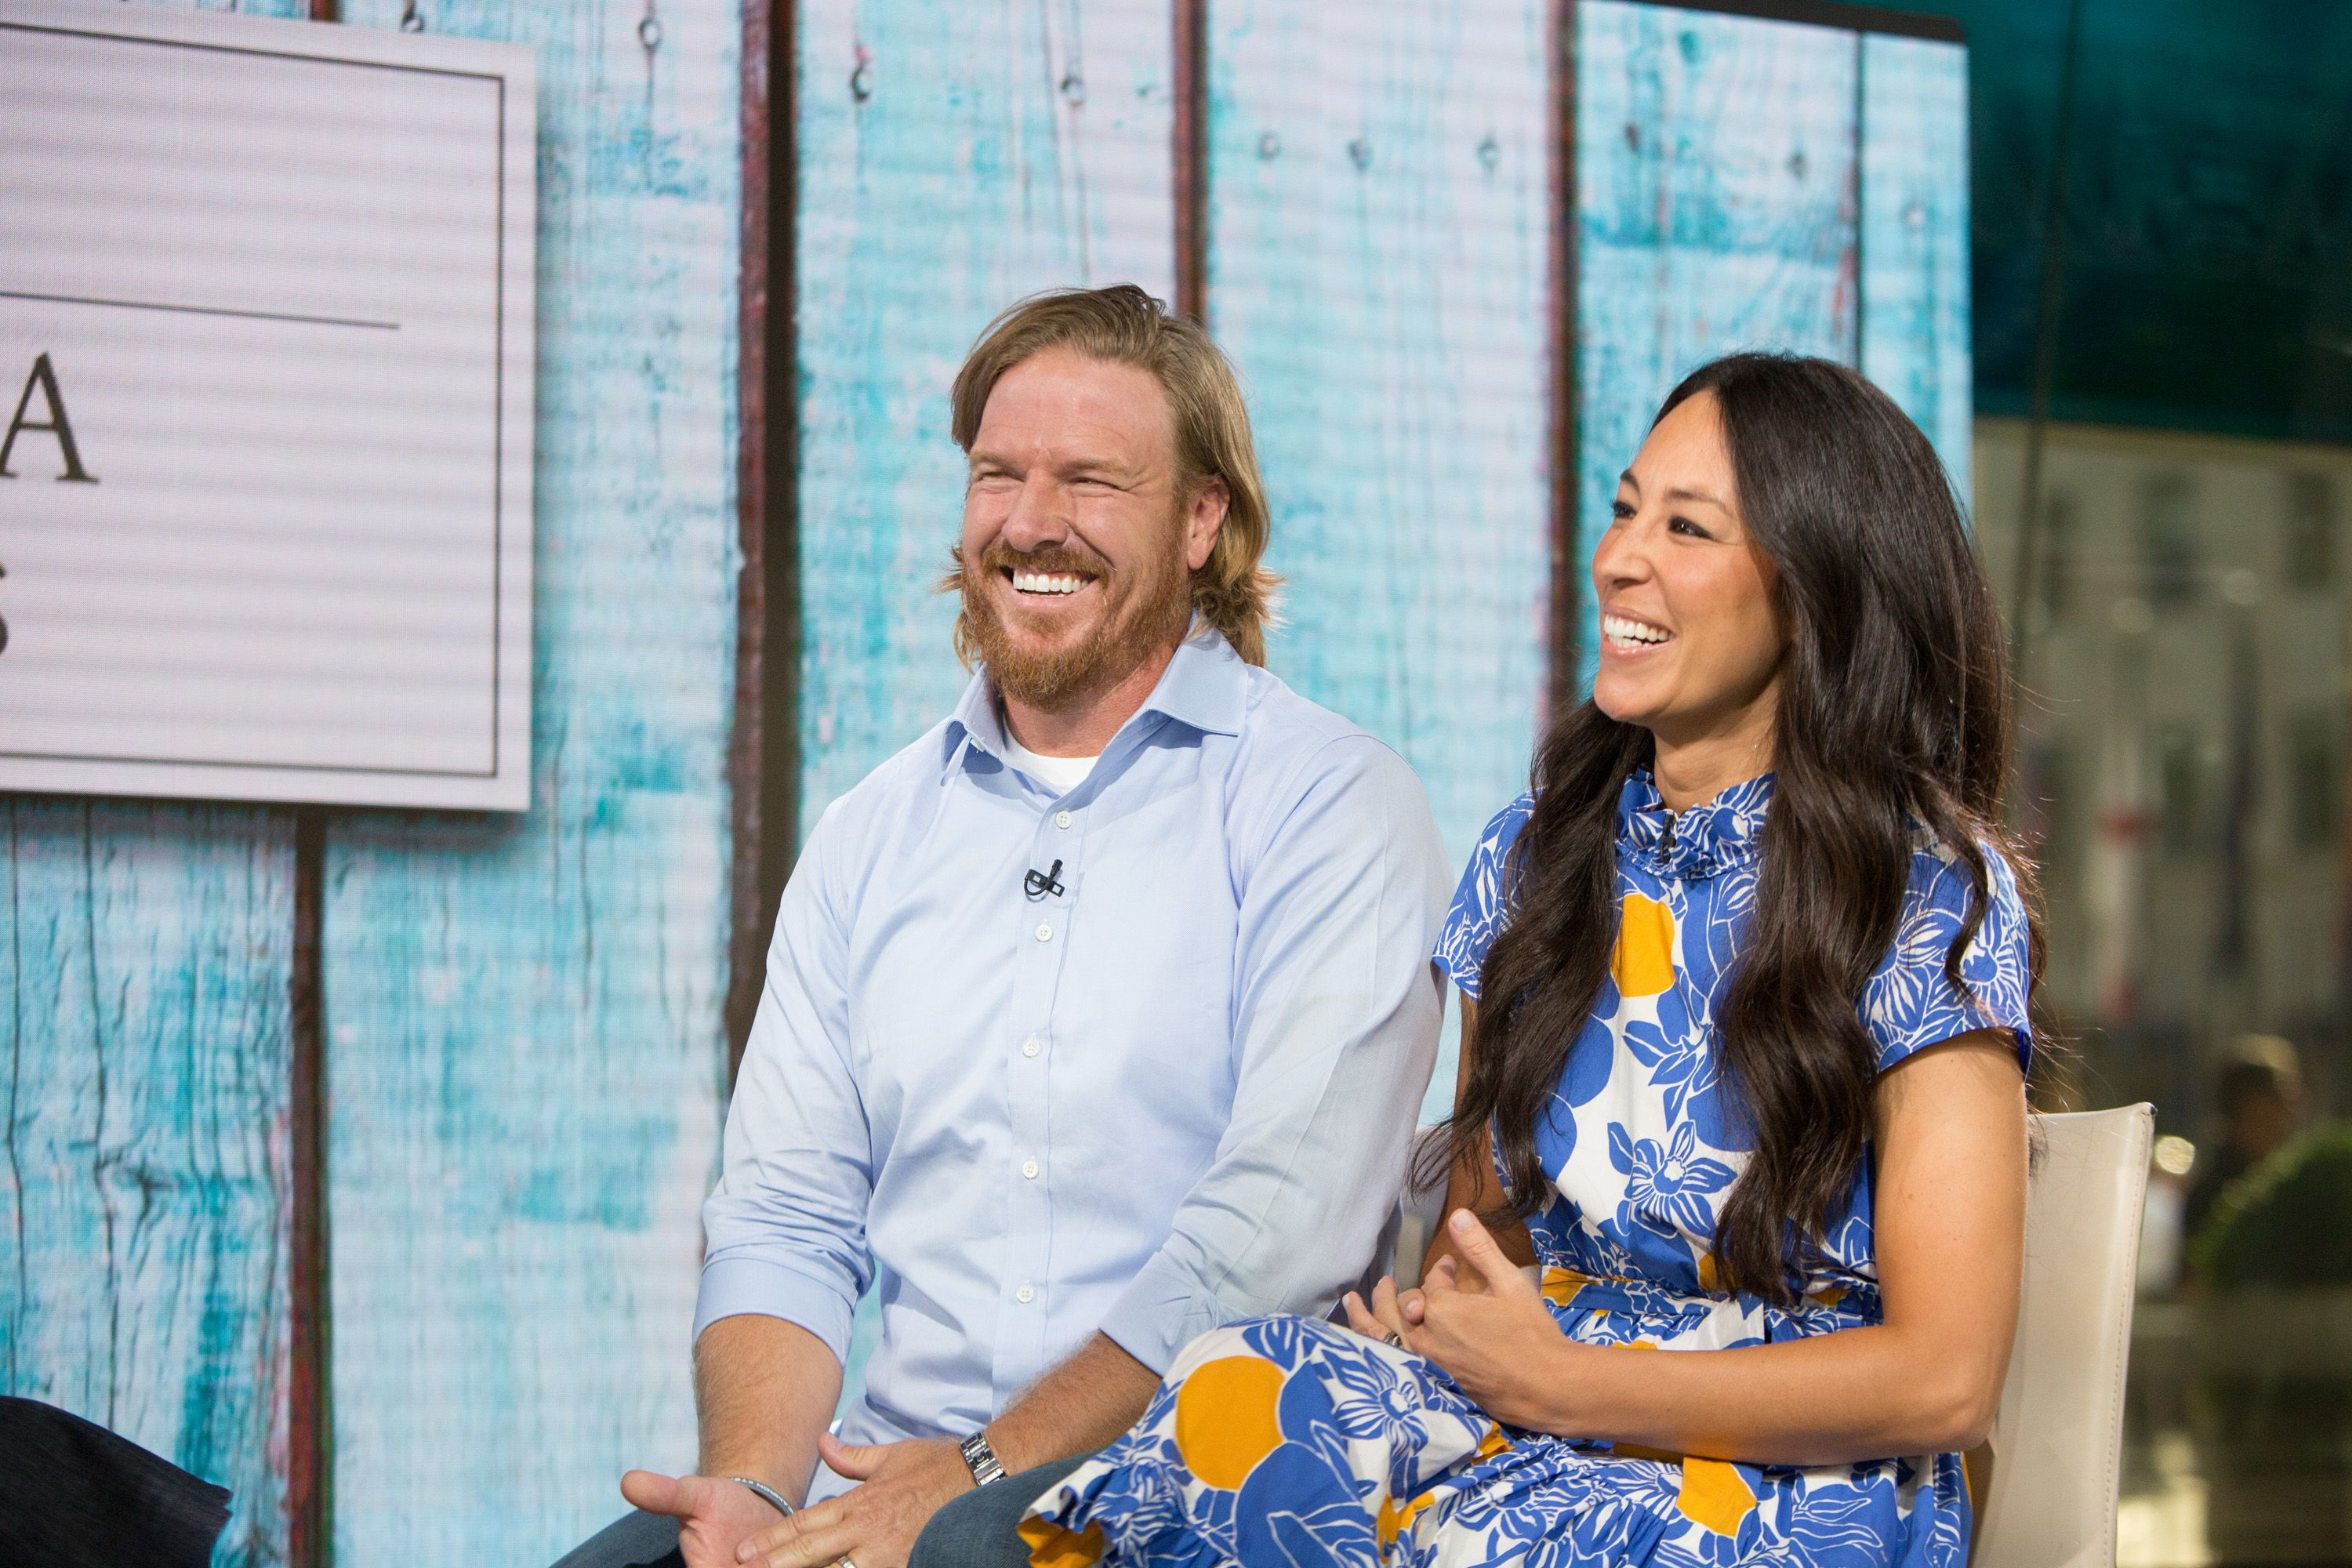 7 Facts About Chip and Joanna Gaines Wedding Joanna Gaines s